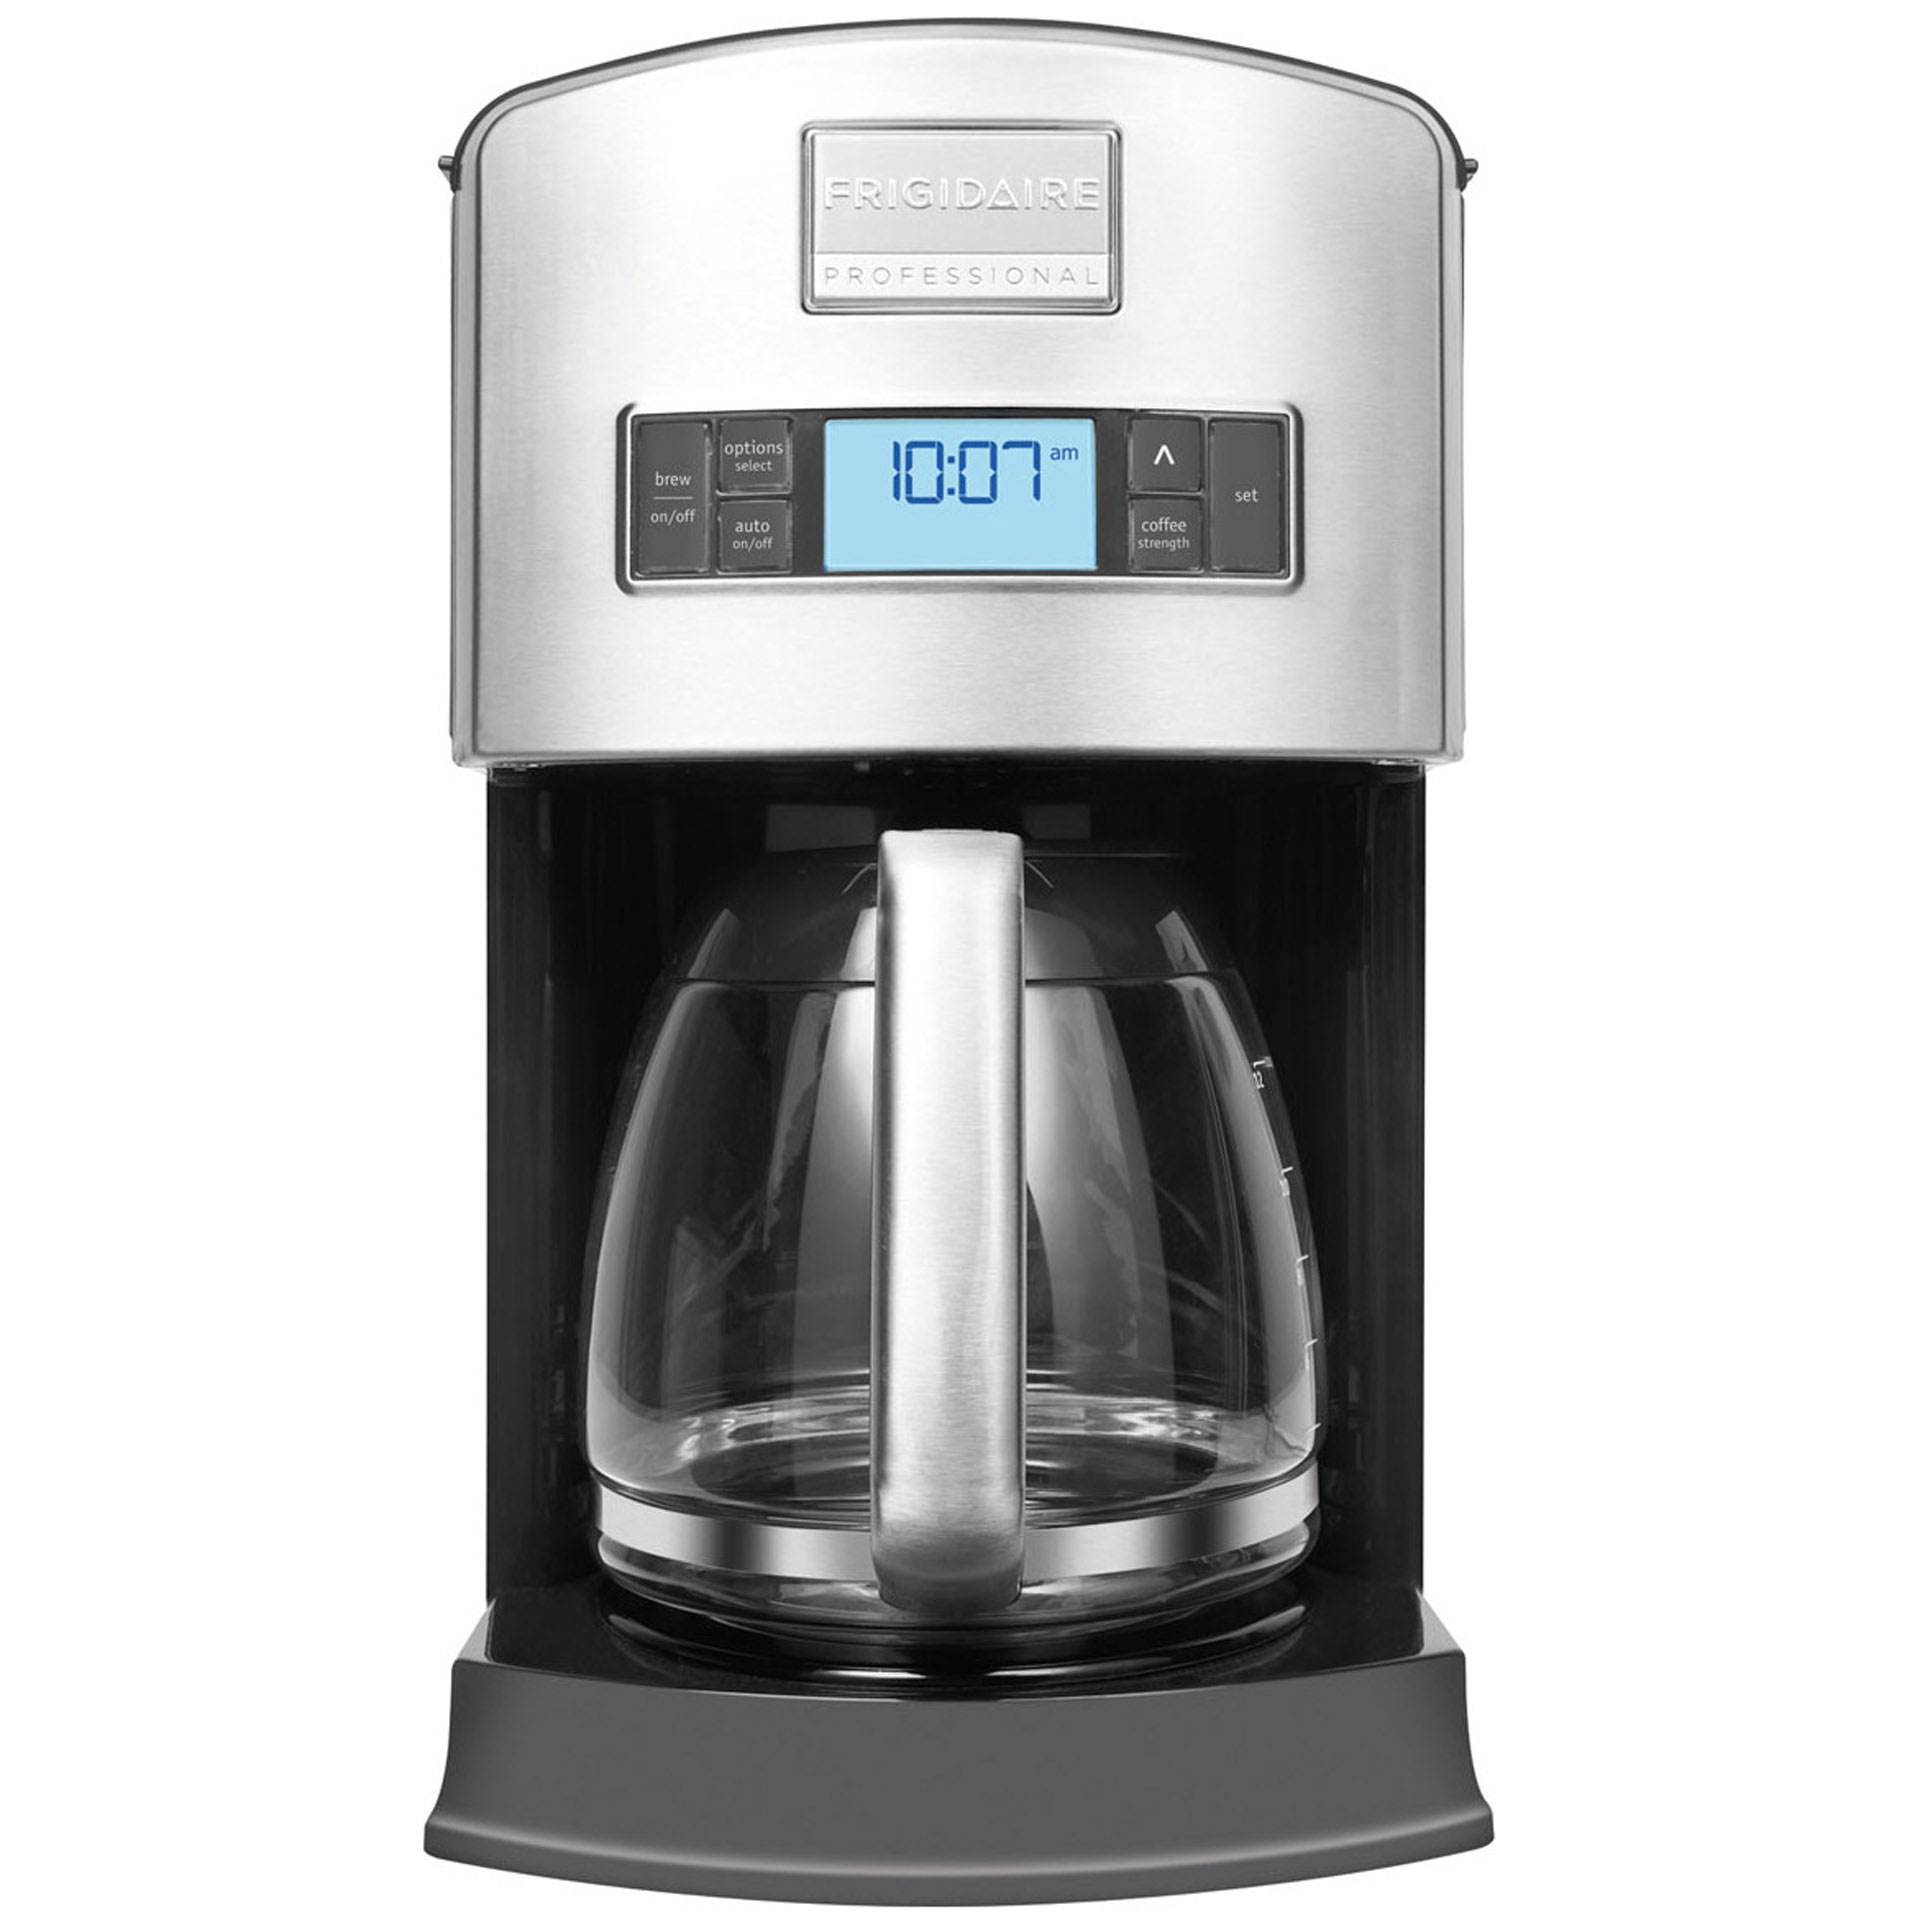 Handleiding Daalderop Professional Coffee Maker : Frigidaire Professional 12-Cup Drip Coffee Maker #FPDC12D7MS Review